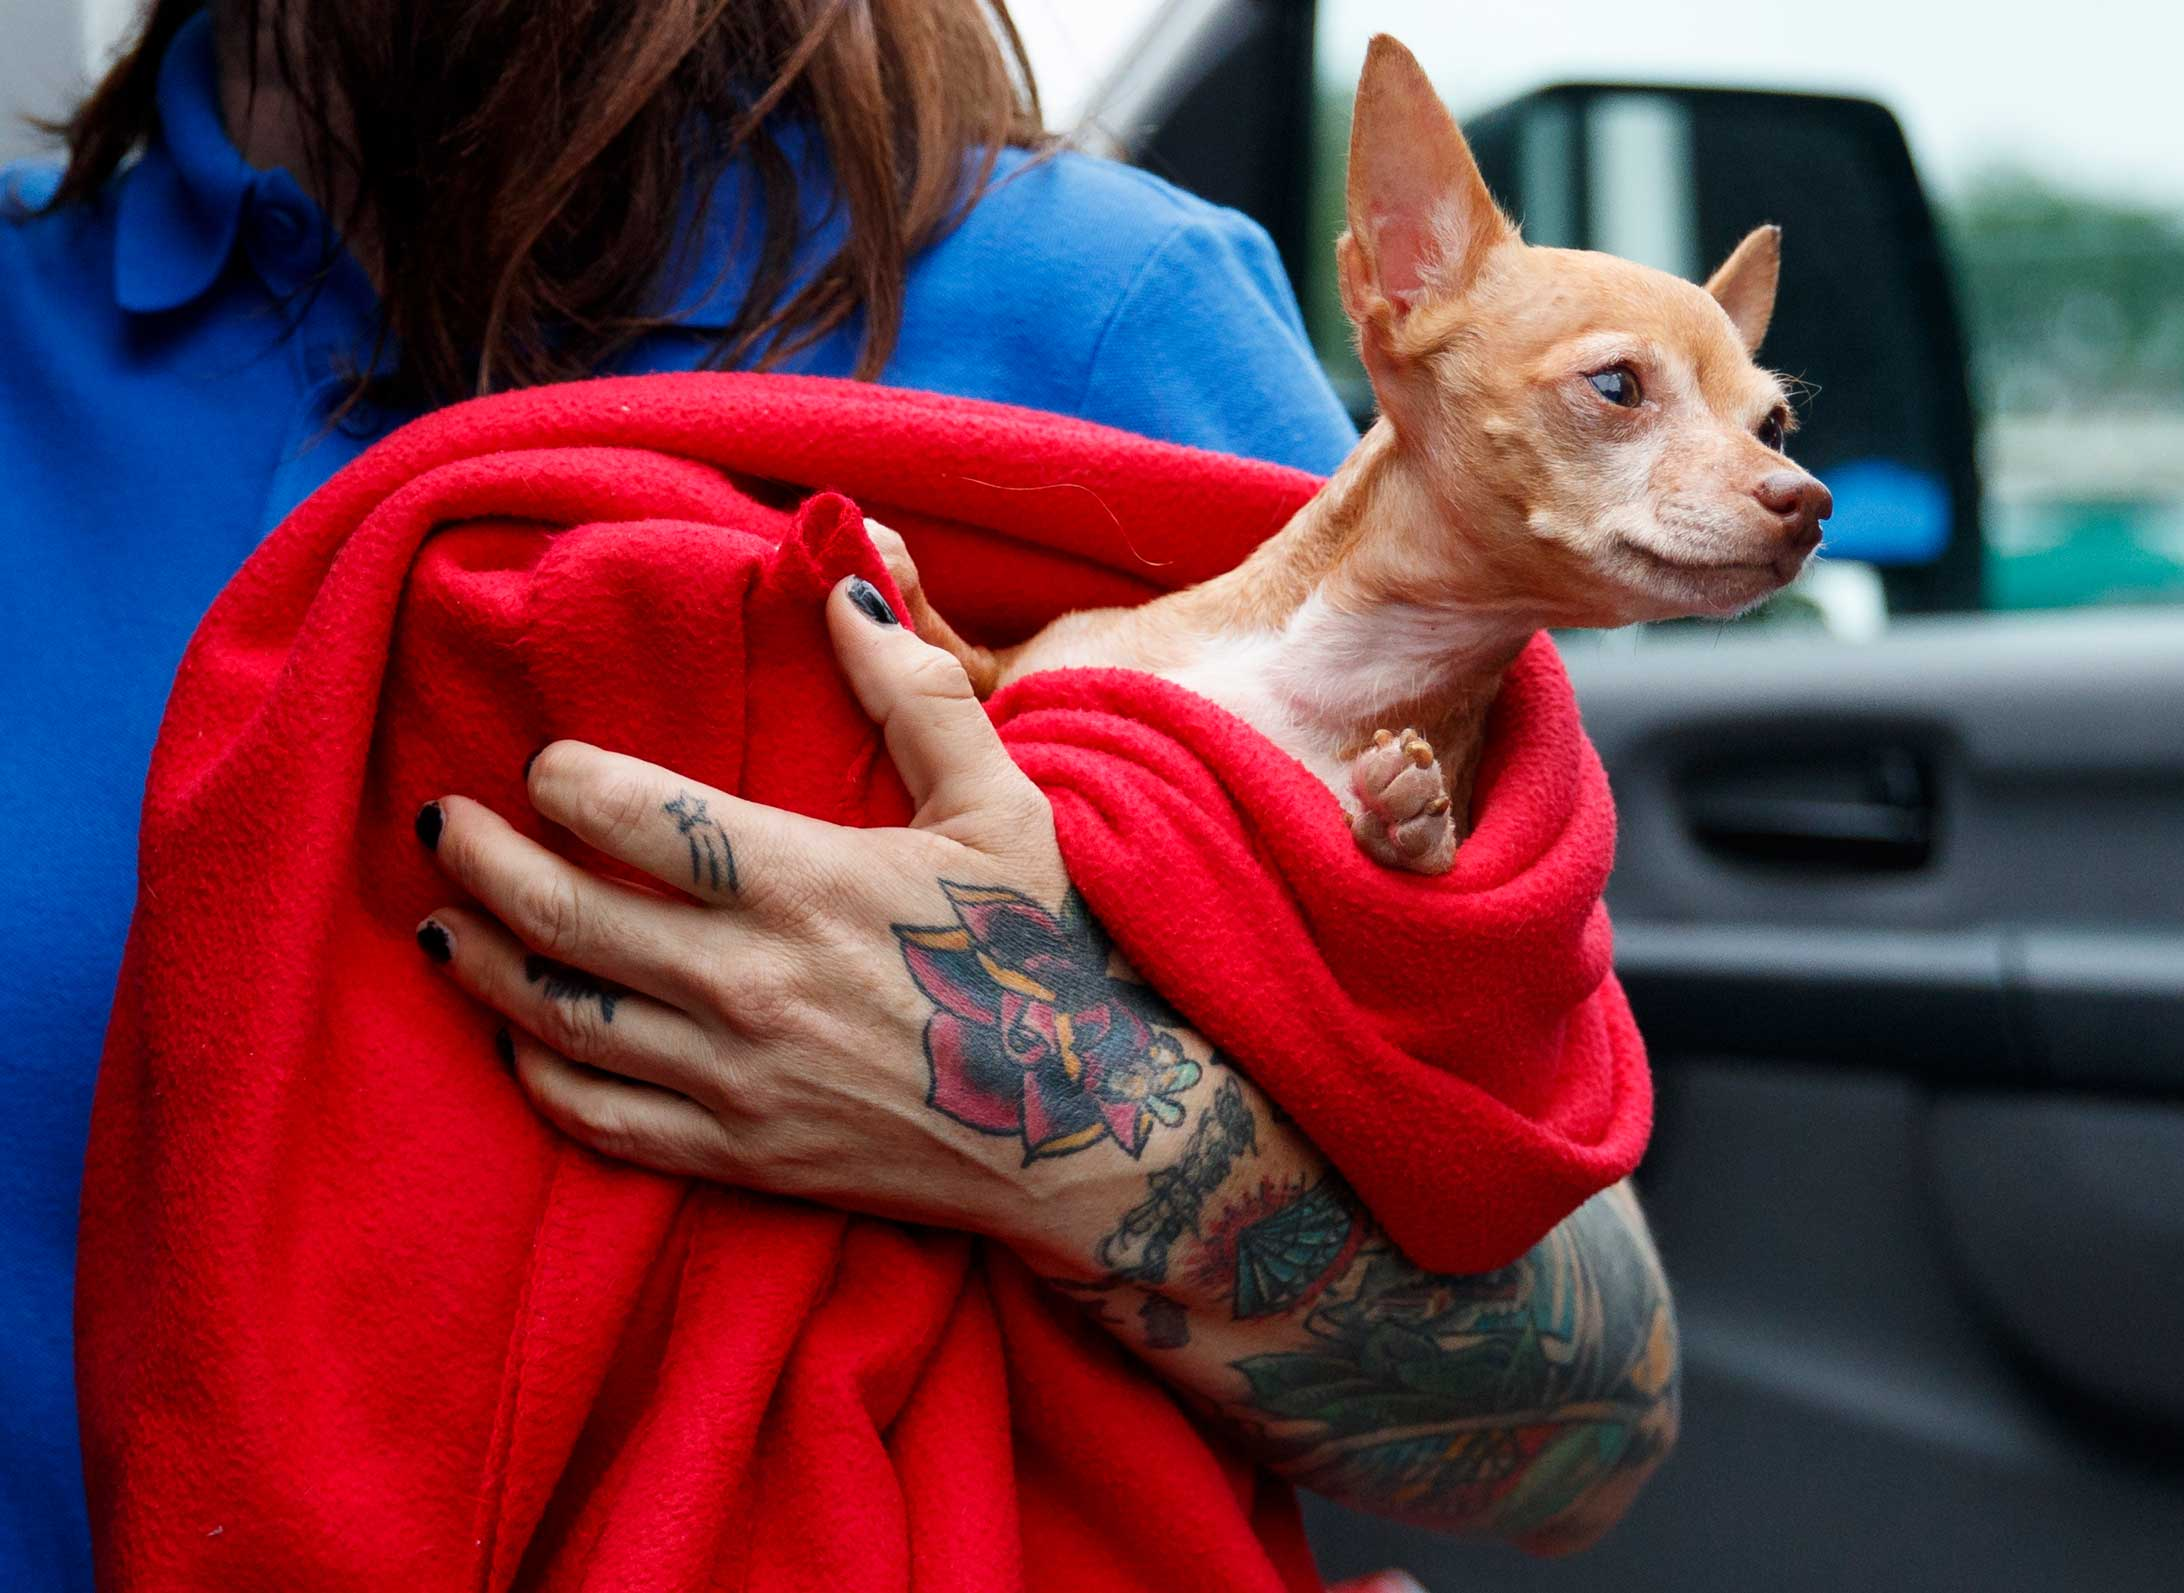 <div class='meta'><div class='origin-logo' data-origin='none'></div><span class='caption-text' data-credit='Carolyn Kaster/AP Photo'>Frances, an 8-year-old Chihuahua mix up for adoption, is one of the 26 cats and dogs arriving at Humane Rescue Alliance in Washington ahead of Florence.</span></div>